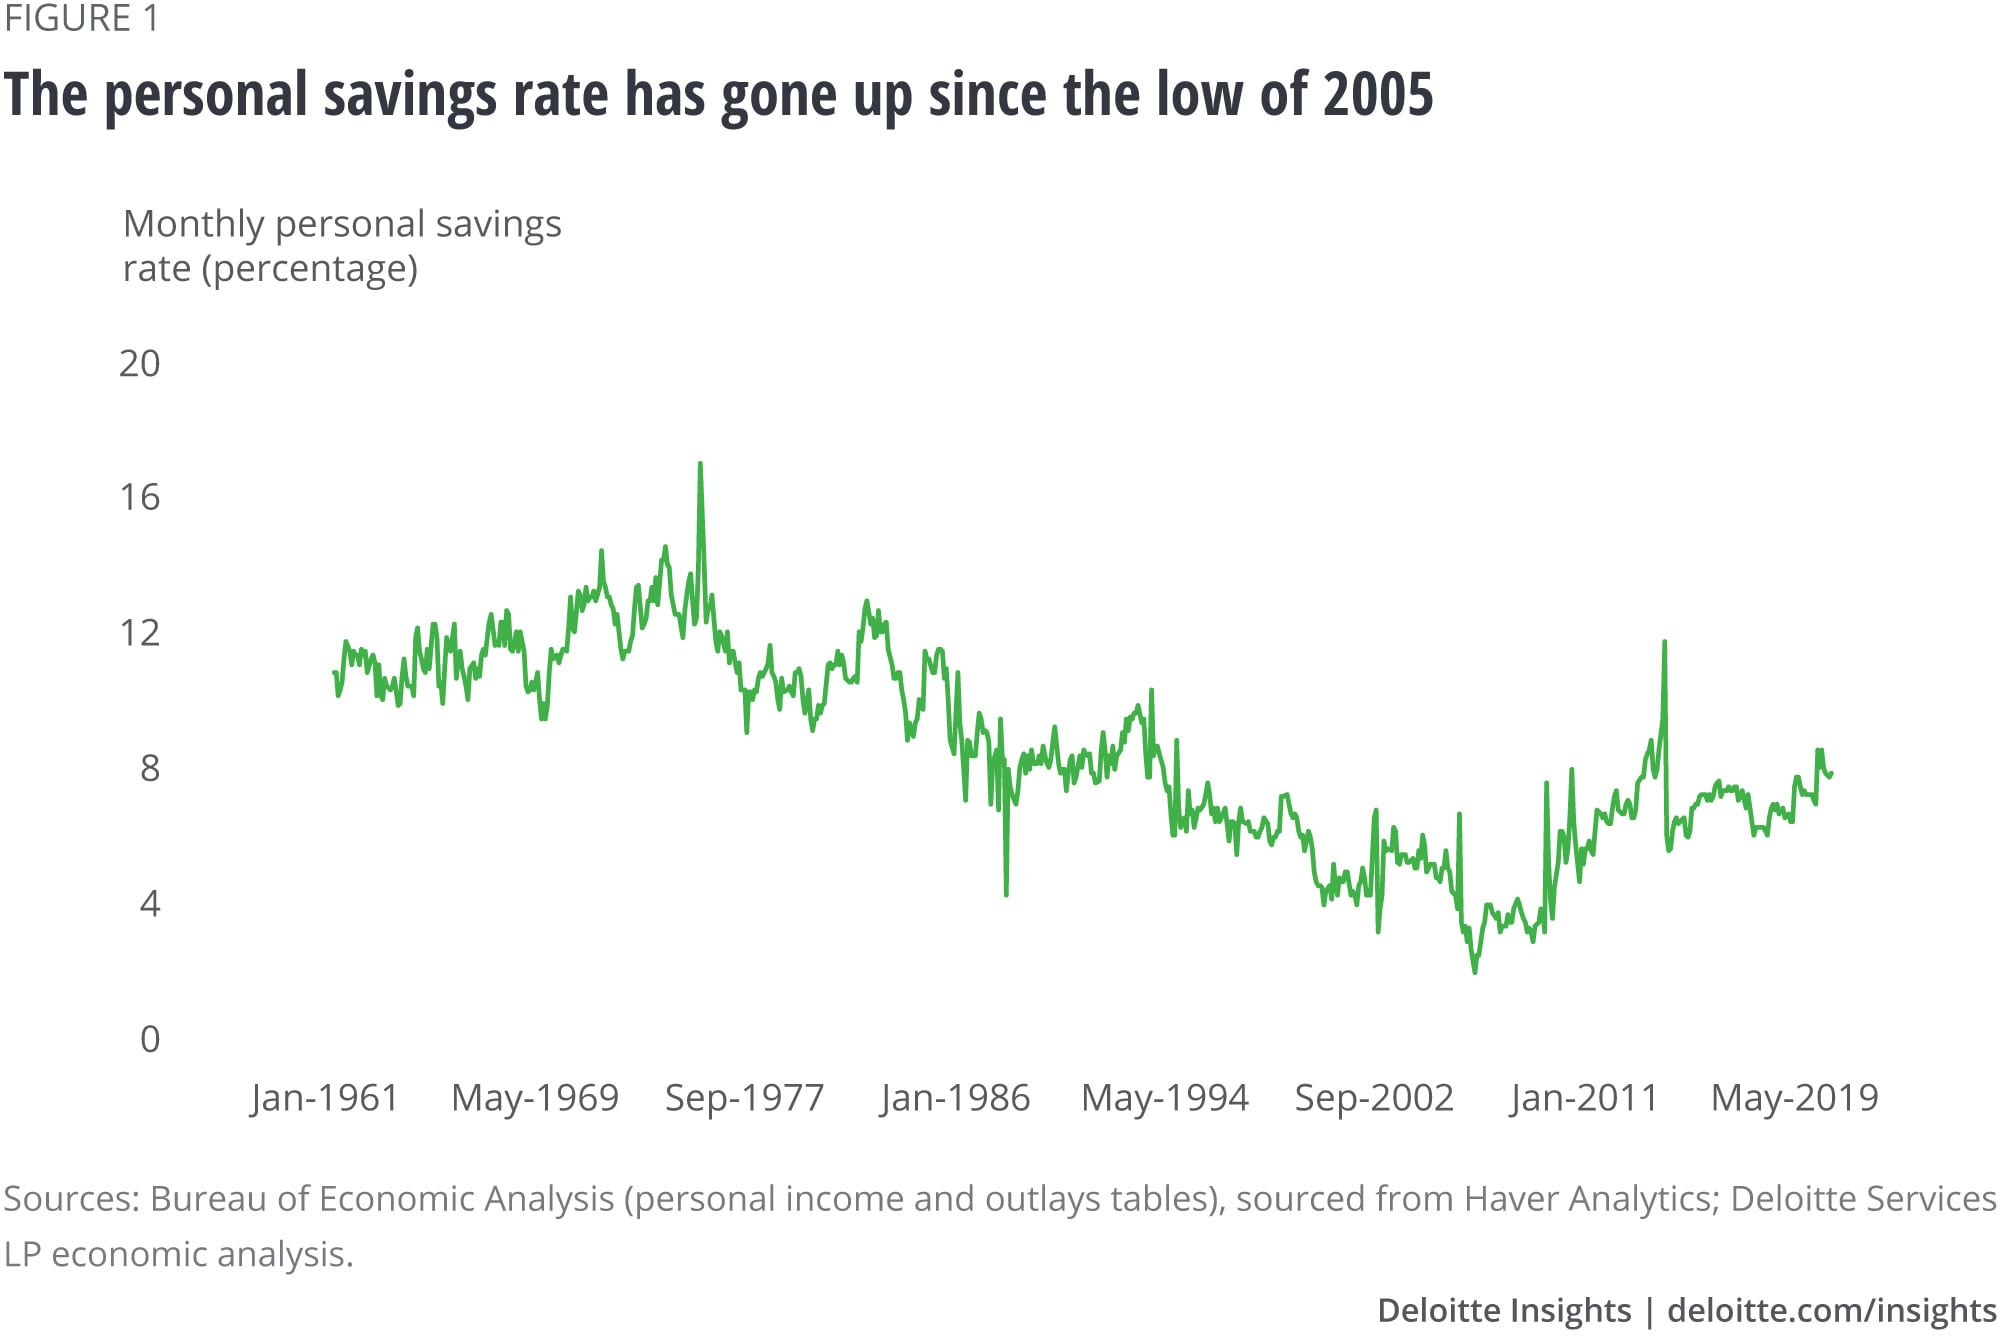 The personal savings rate has gone up since the low of 2005